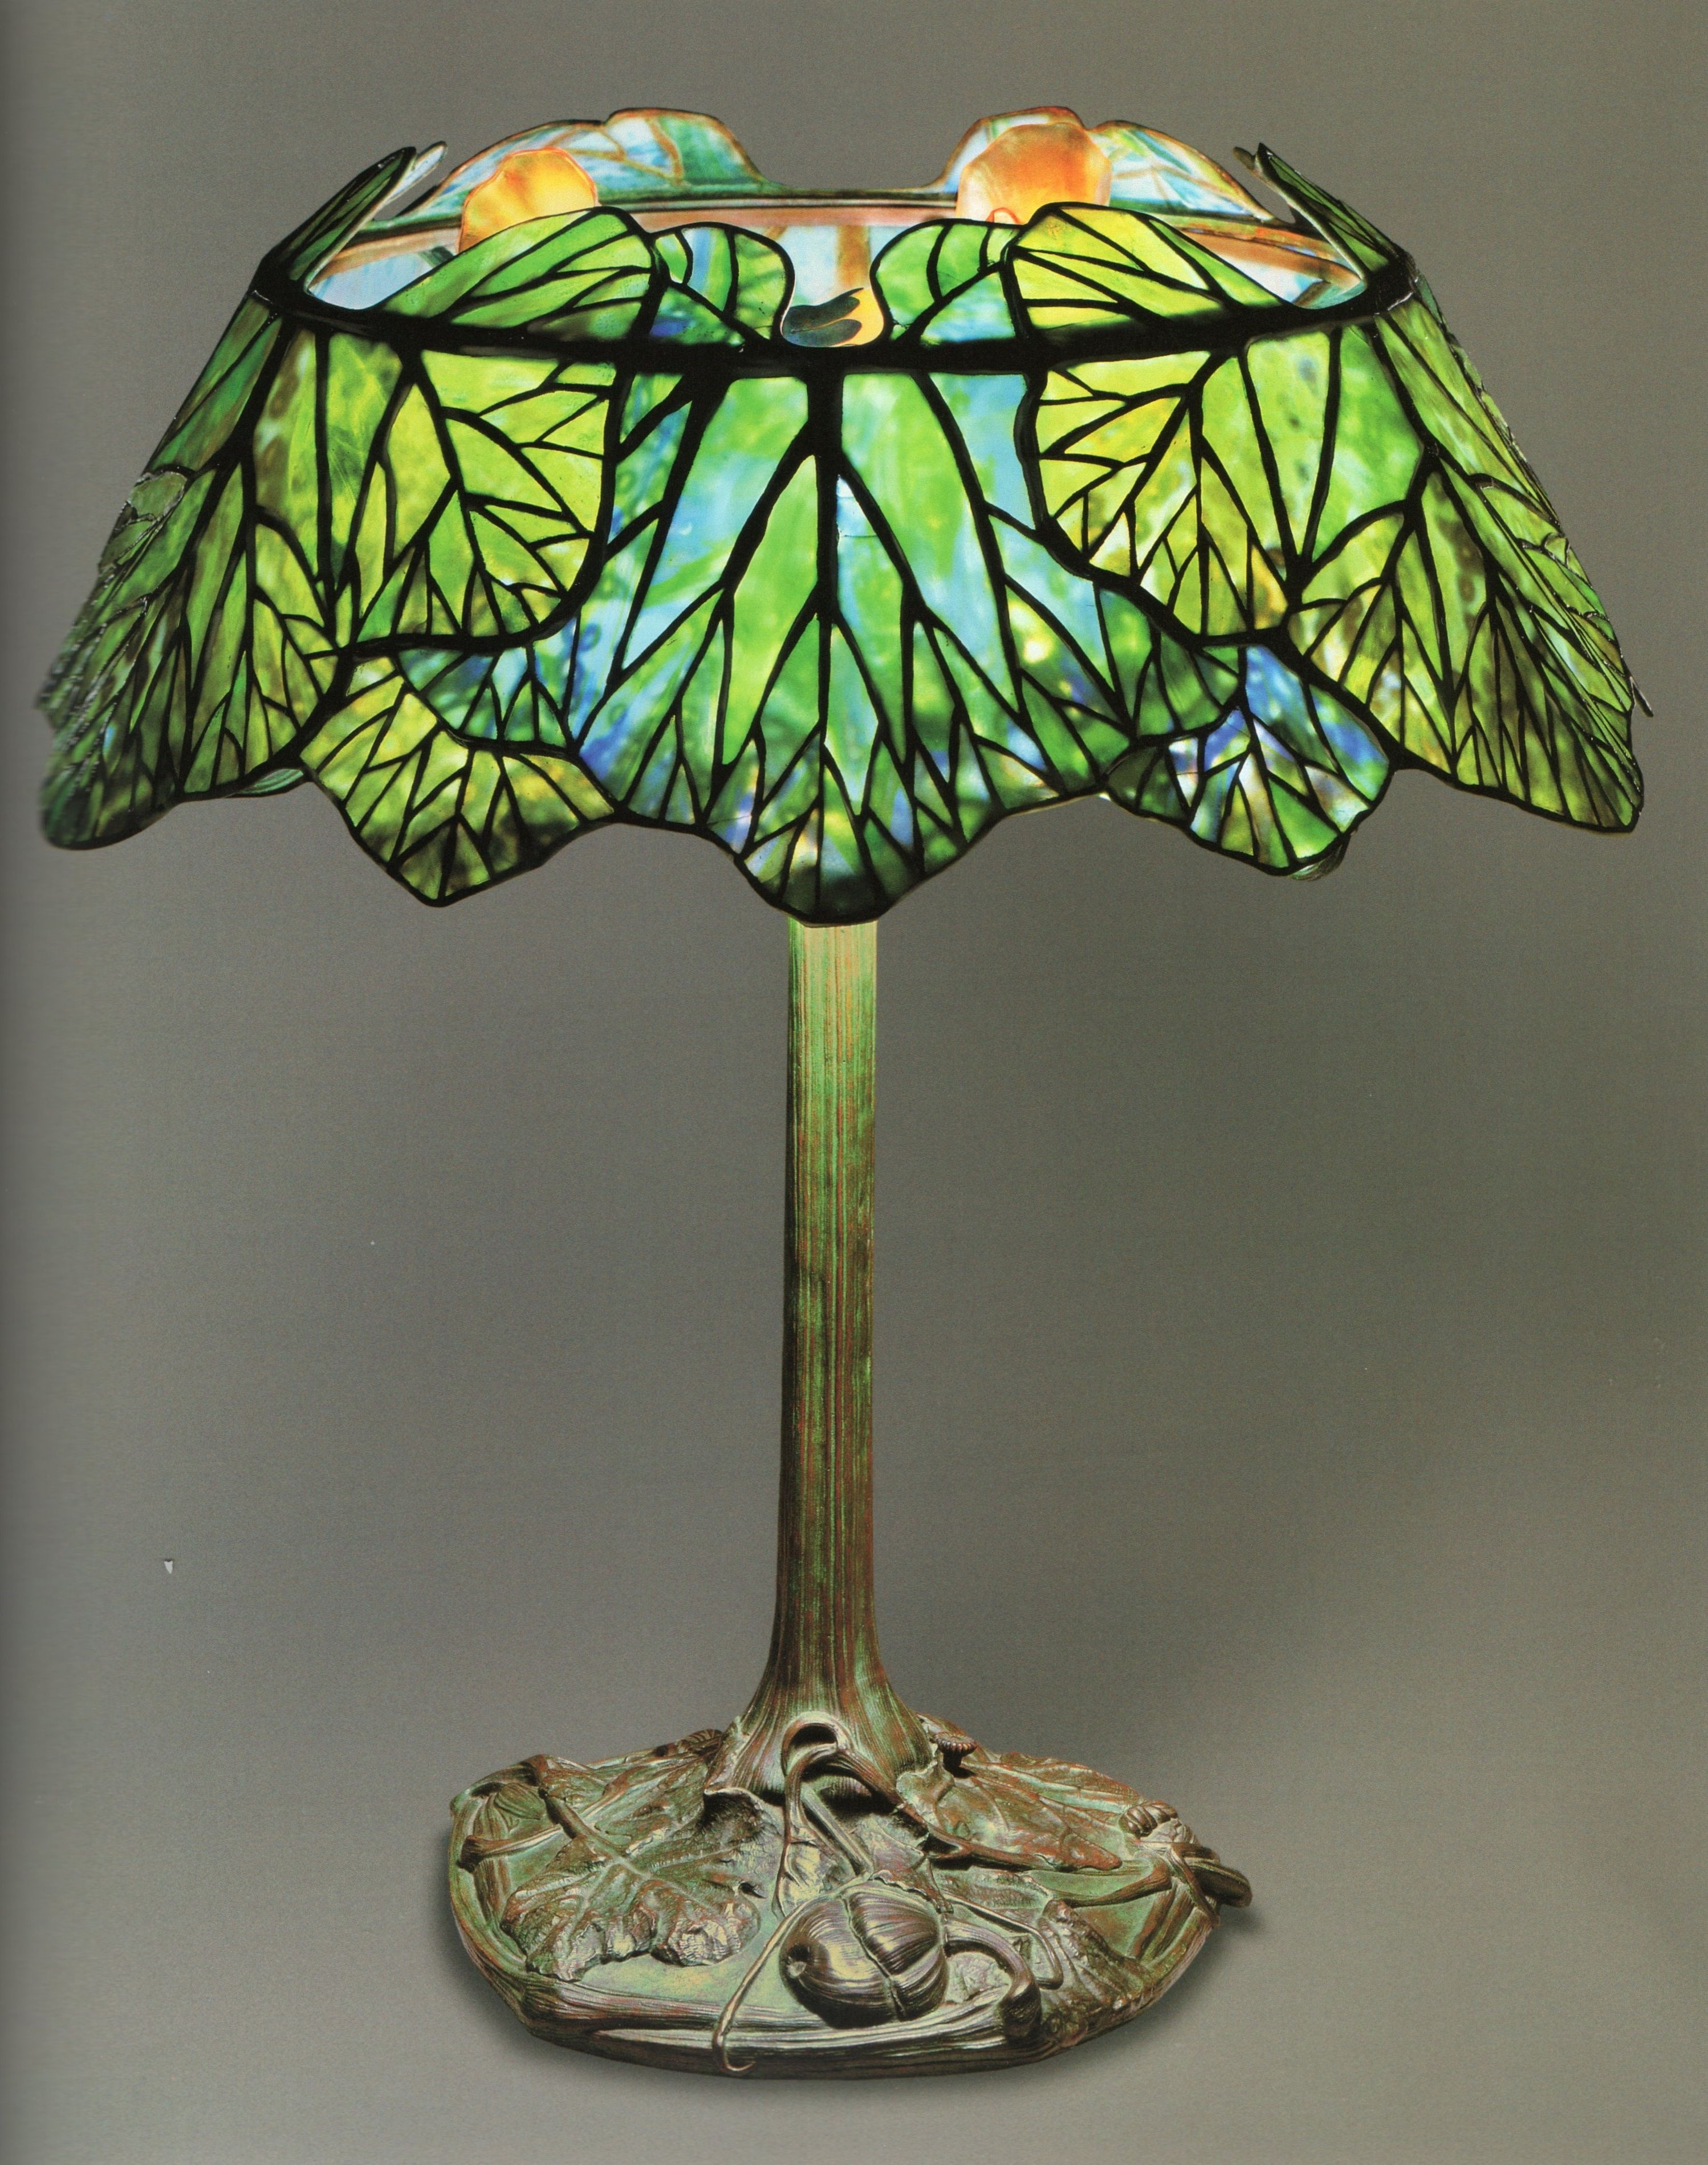 Glass Lamp Art Lct 032 Squash Lamp Shade Genuine Tiffany Lamps In 2019